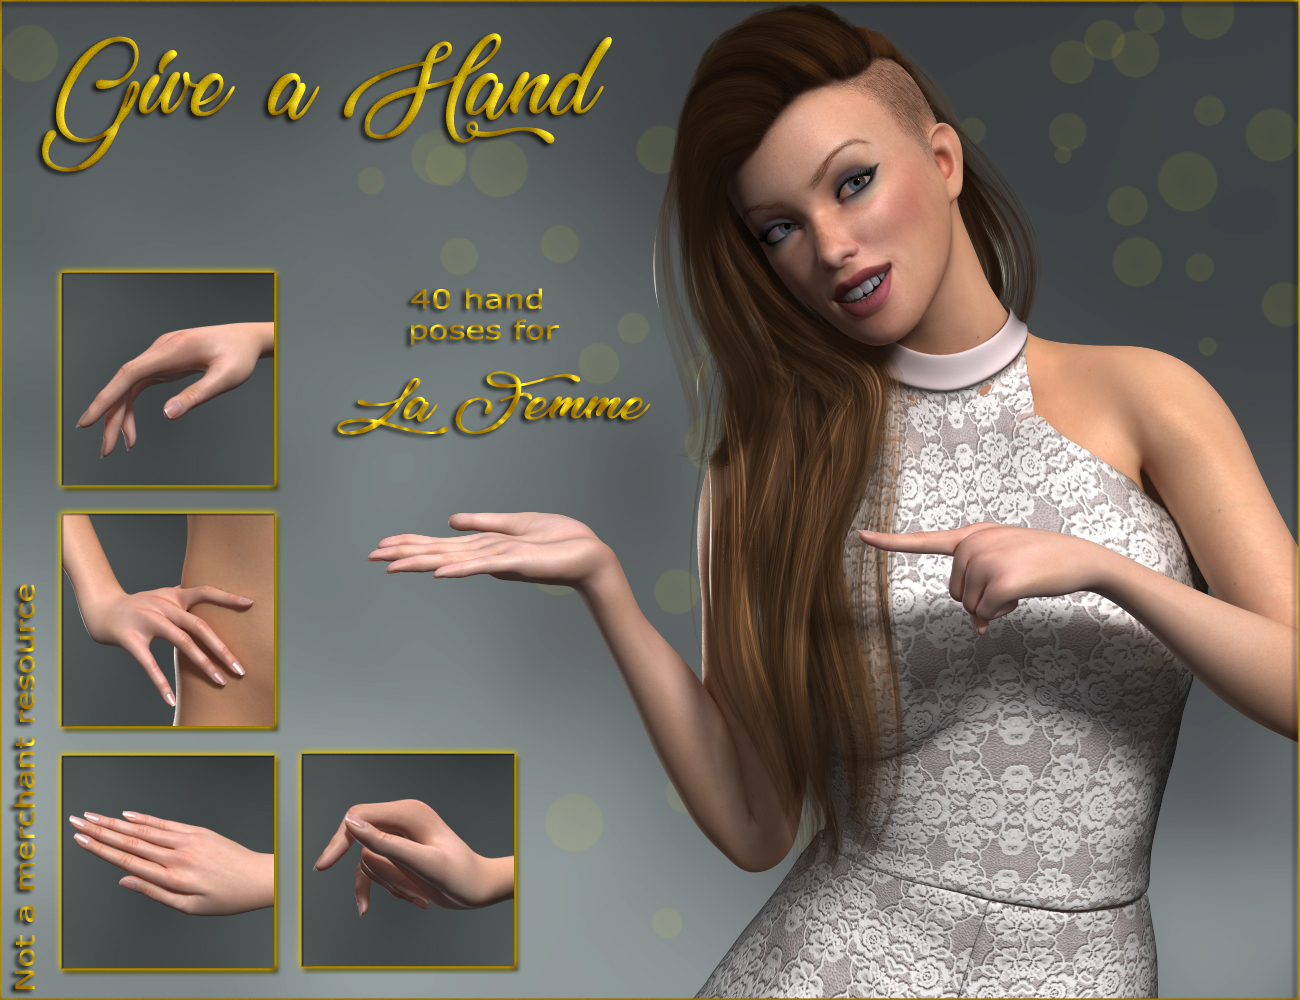 Give a Hand - Hands for La Femme by ilona